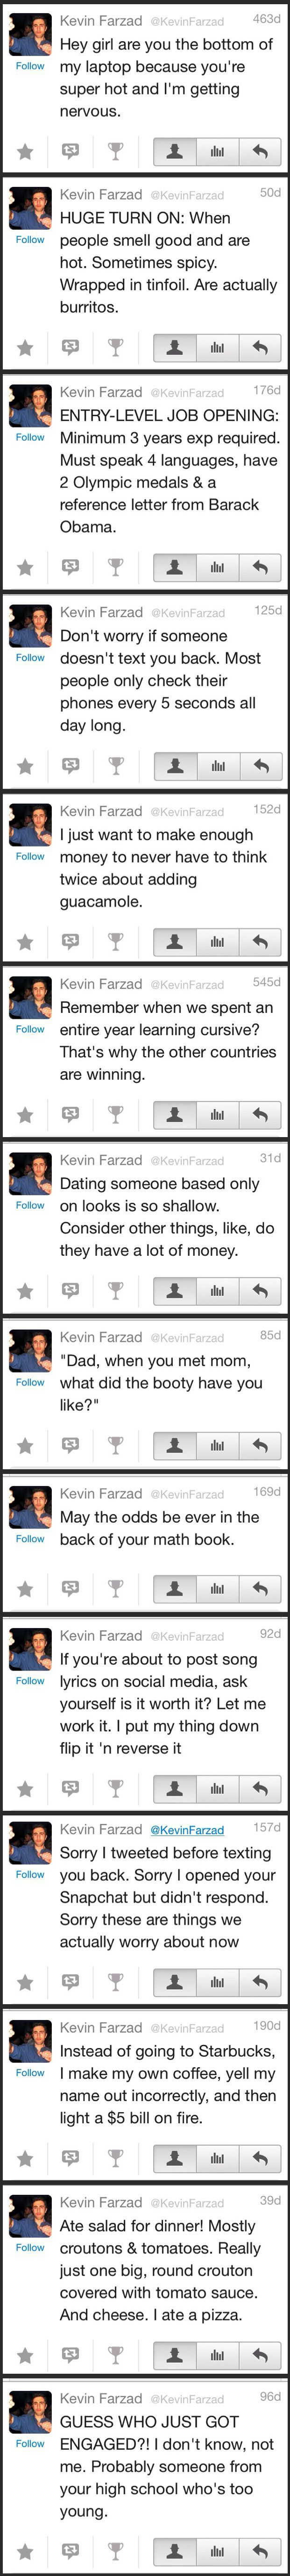 A Collection Of Kevin Farzad Tweets Hilarious Humor And Funny - Ryan reynolds politely responds to fans dirty tweets and its just hilarious